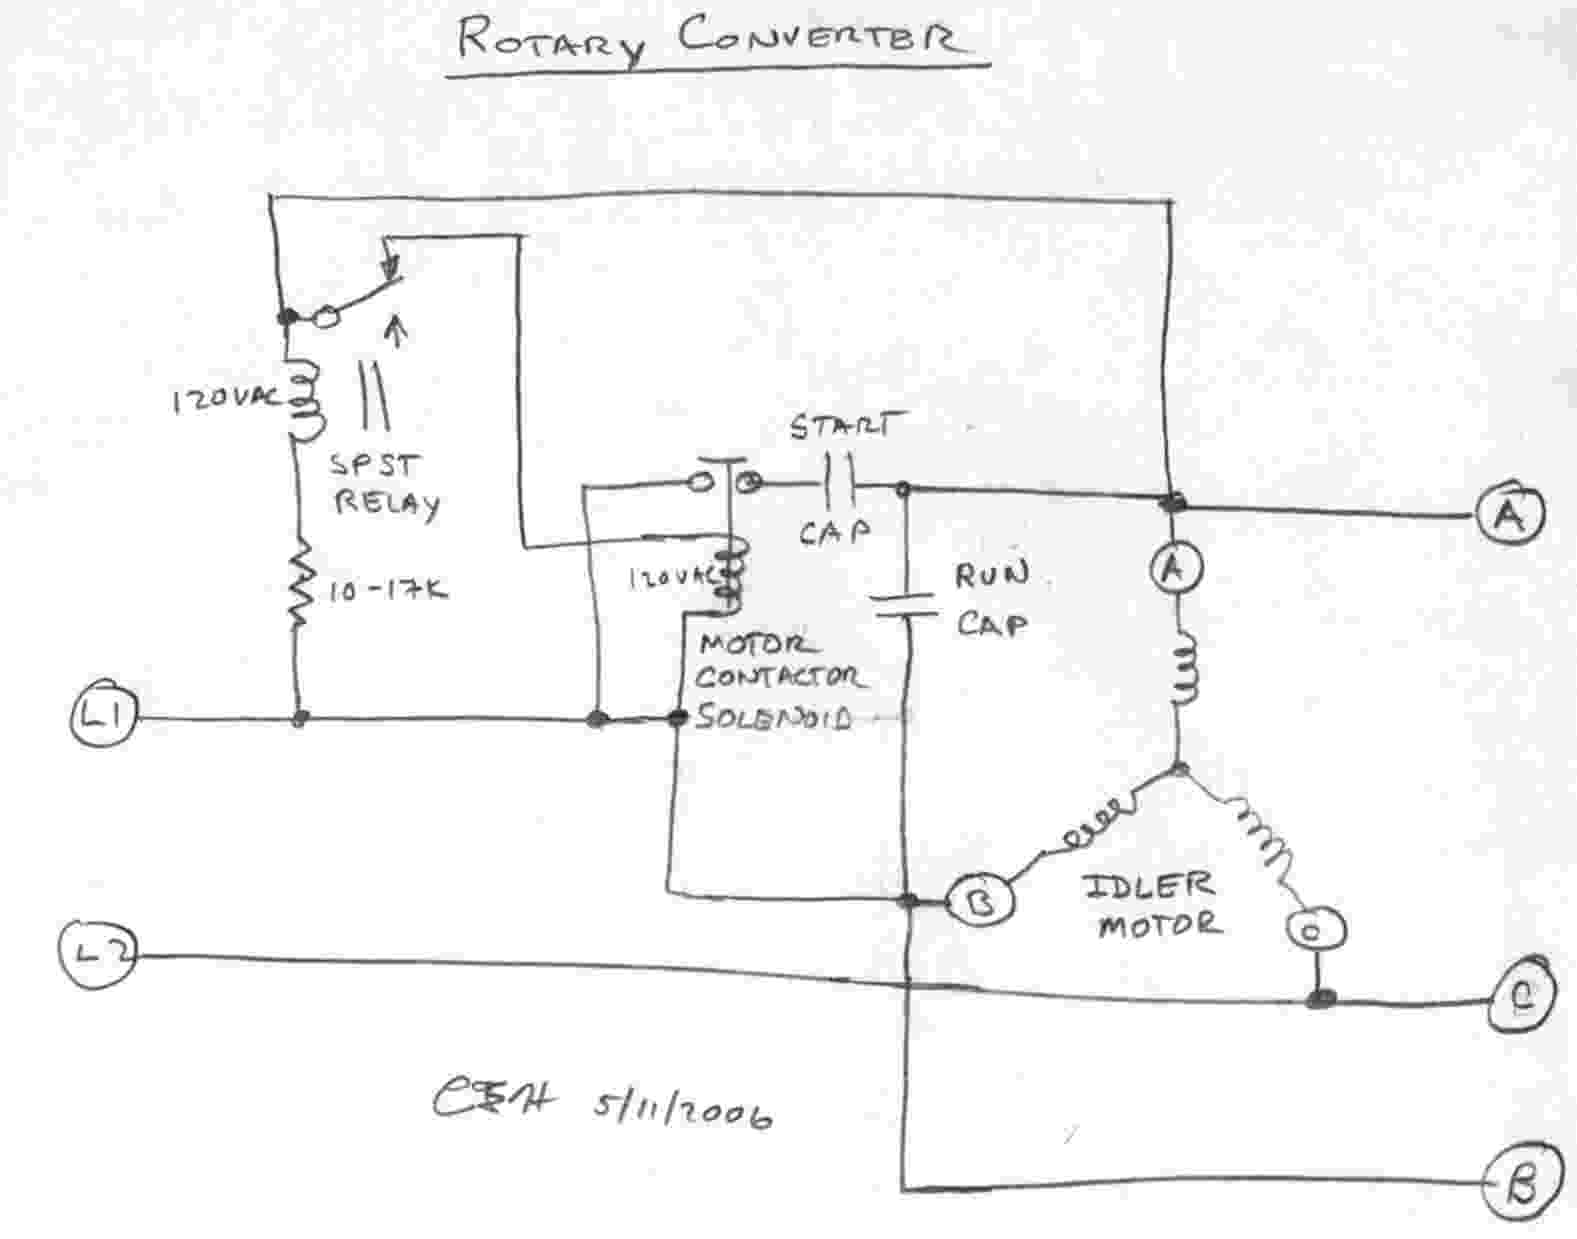 Building 3 Phase Wiring Diagram Great Design Of Contactor 220 How To Build Rotary Converter 50 208 Motor Diagrams